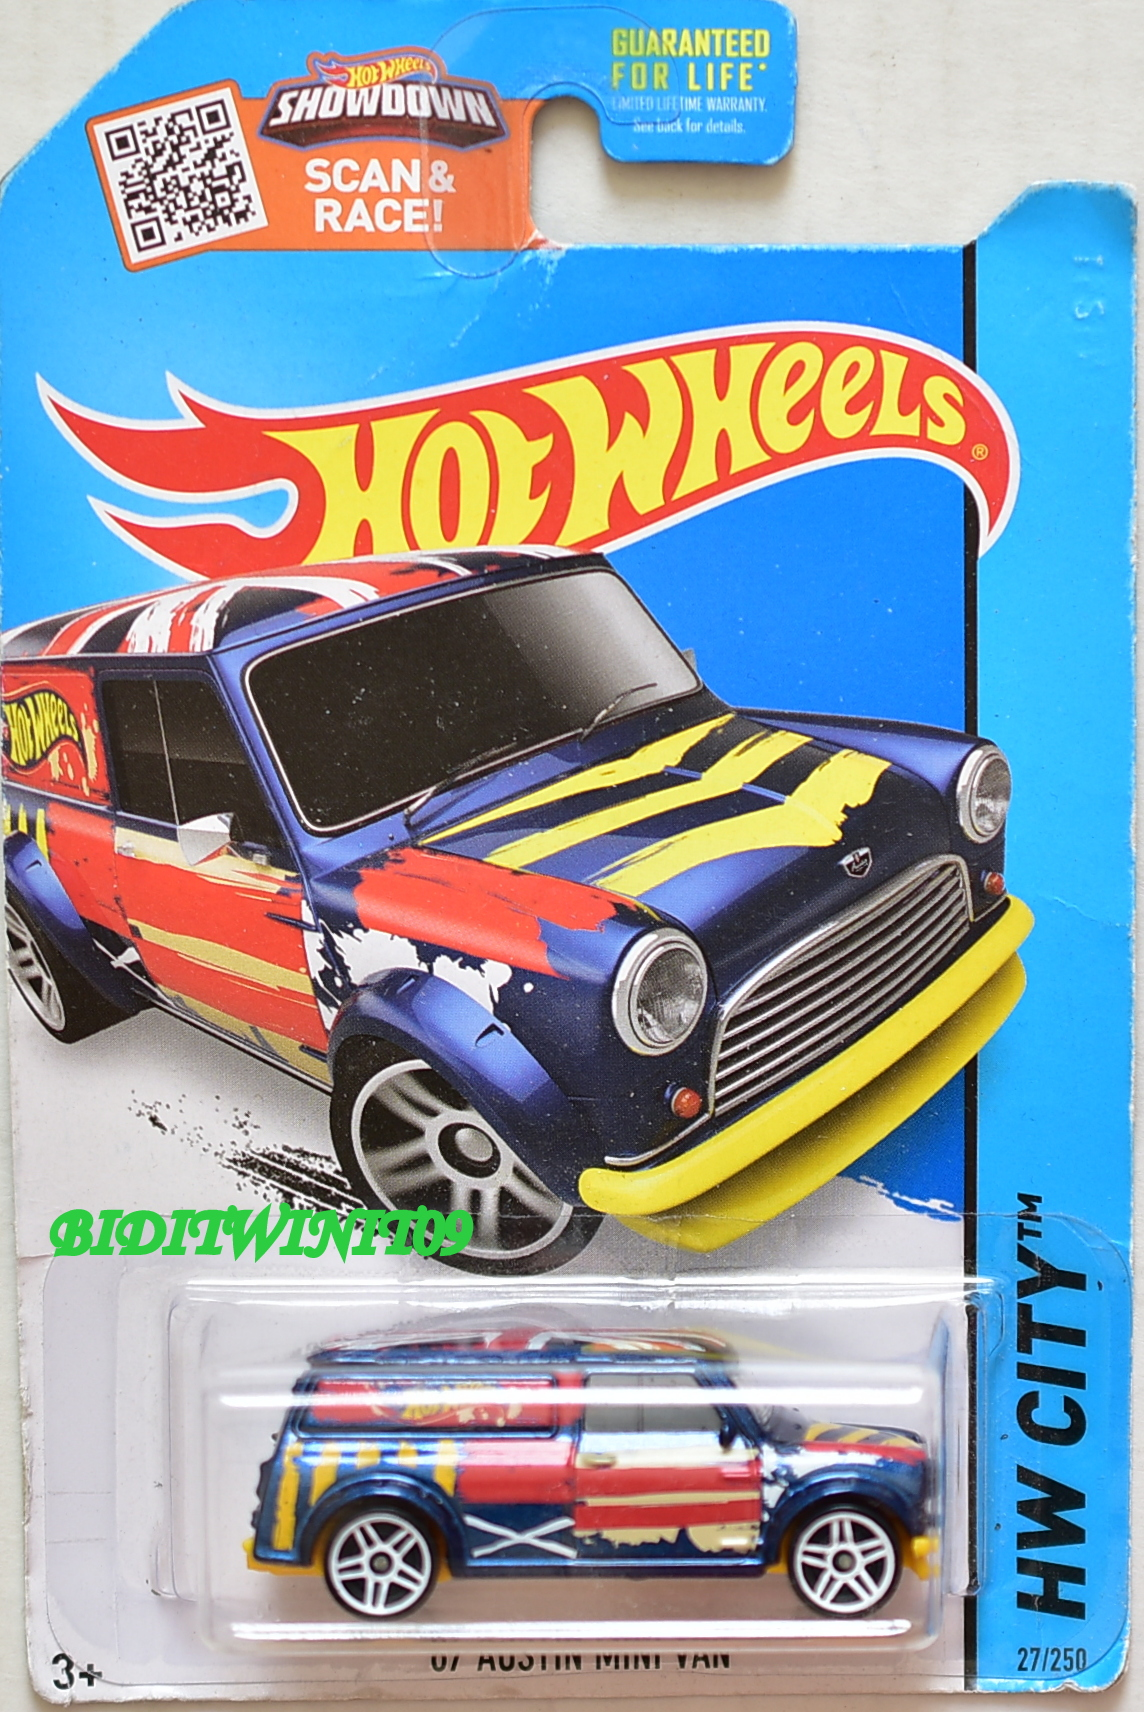 HOT WHEELS 2015 HW CITY - HW ART CARS '67 AUSTIN MINI VAN BLUE BAD CARD E+